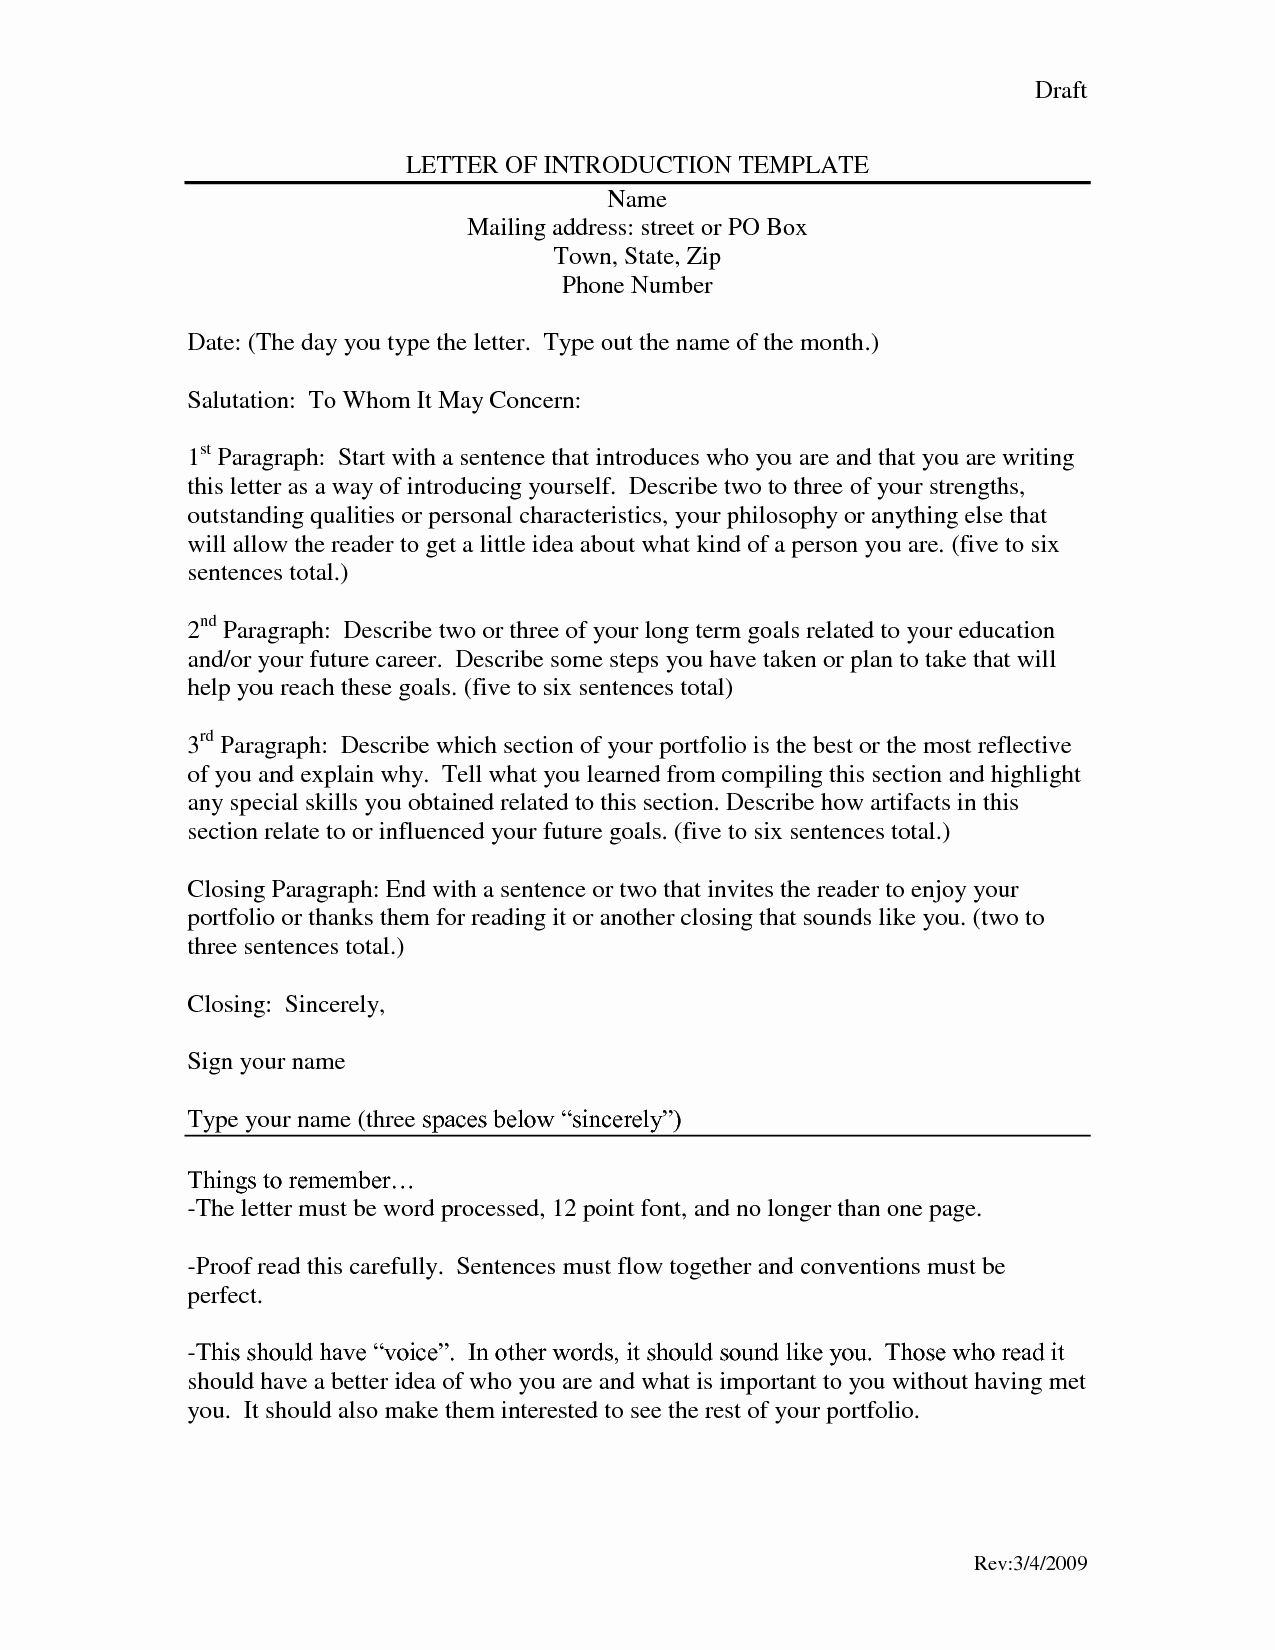 Letter Of Introduction for Employment Elegant Letter Introduction Template Dancingmermaid Yfzce92i